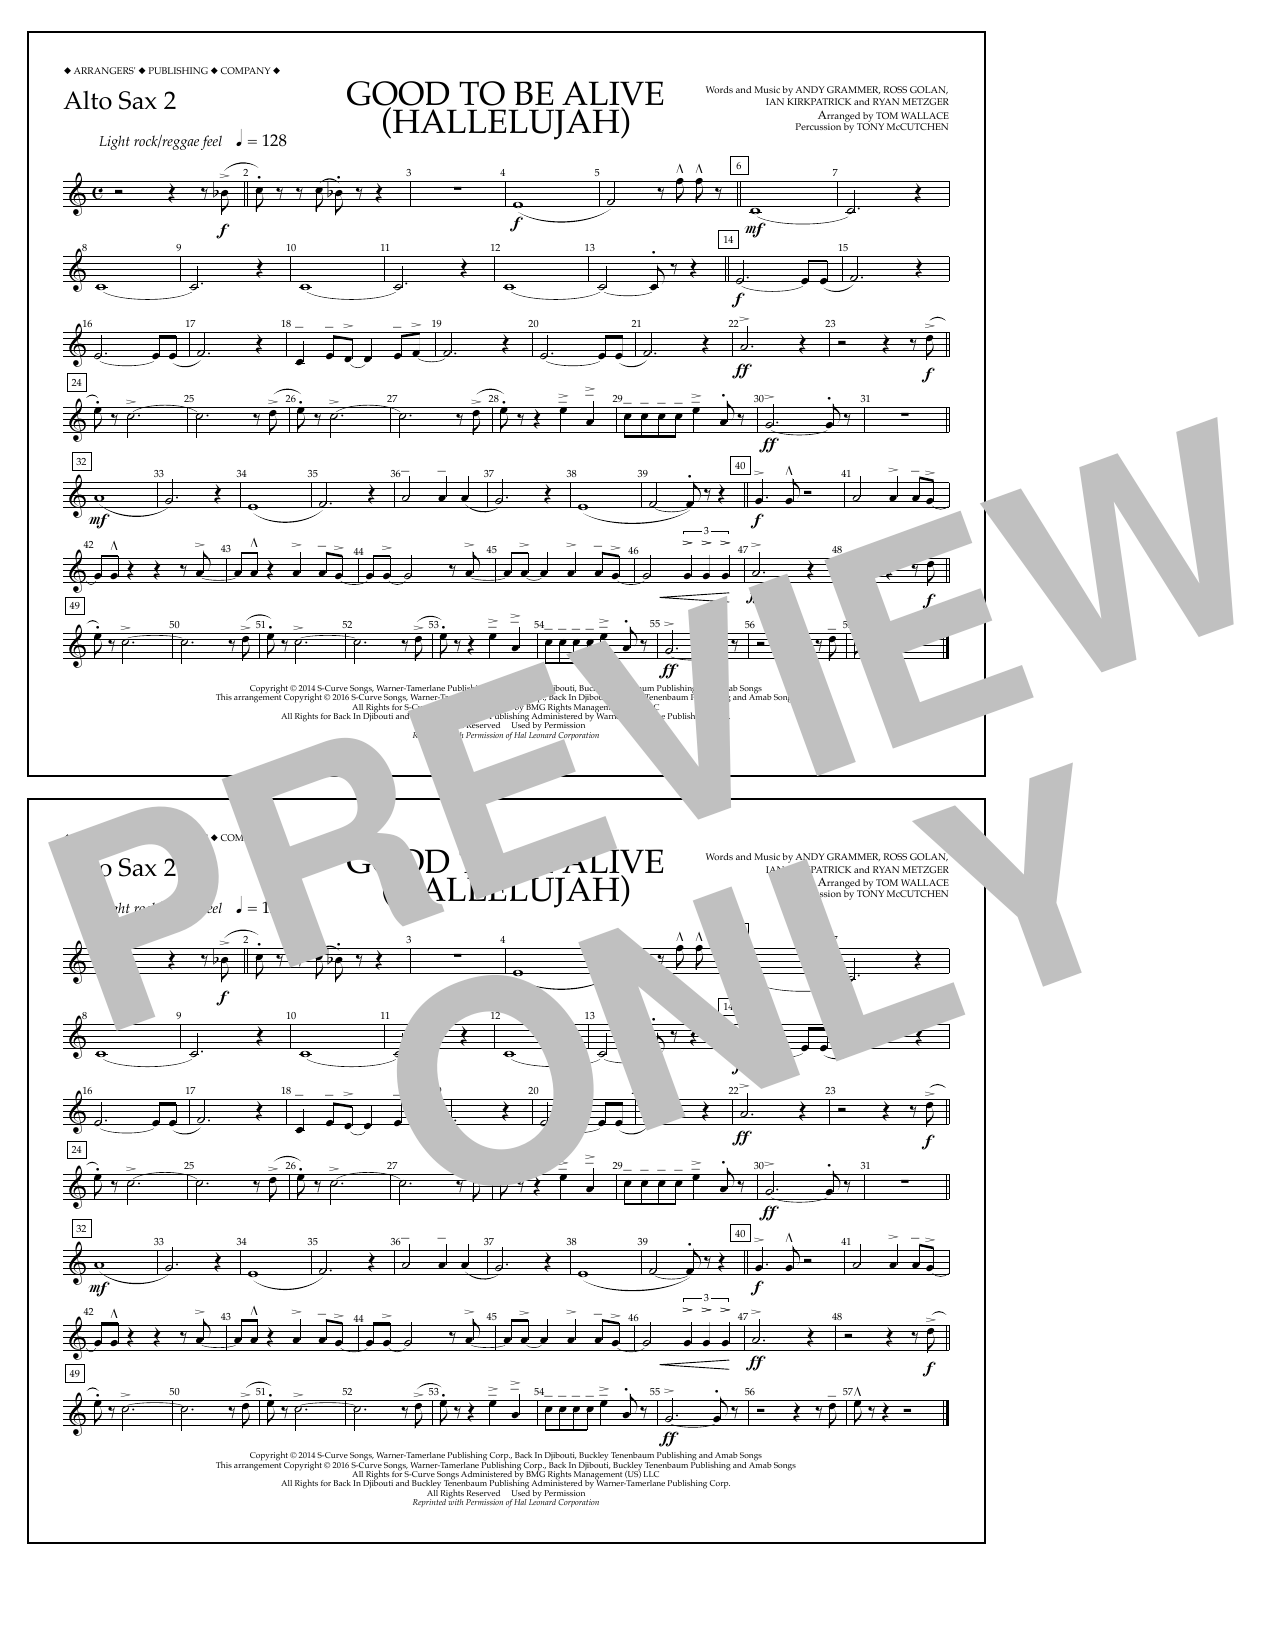 Good to Be Alive (Hallelujah) - Alto Sax 2 Sheet Music